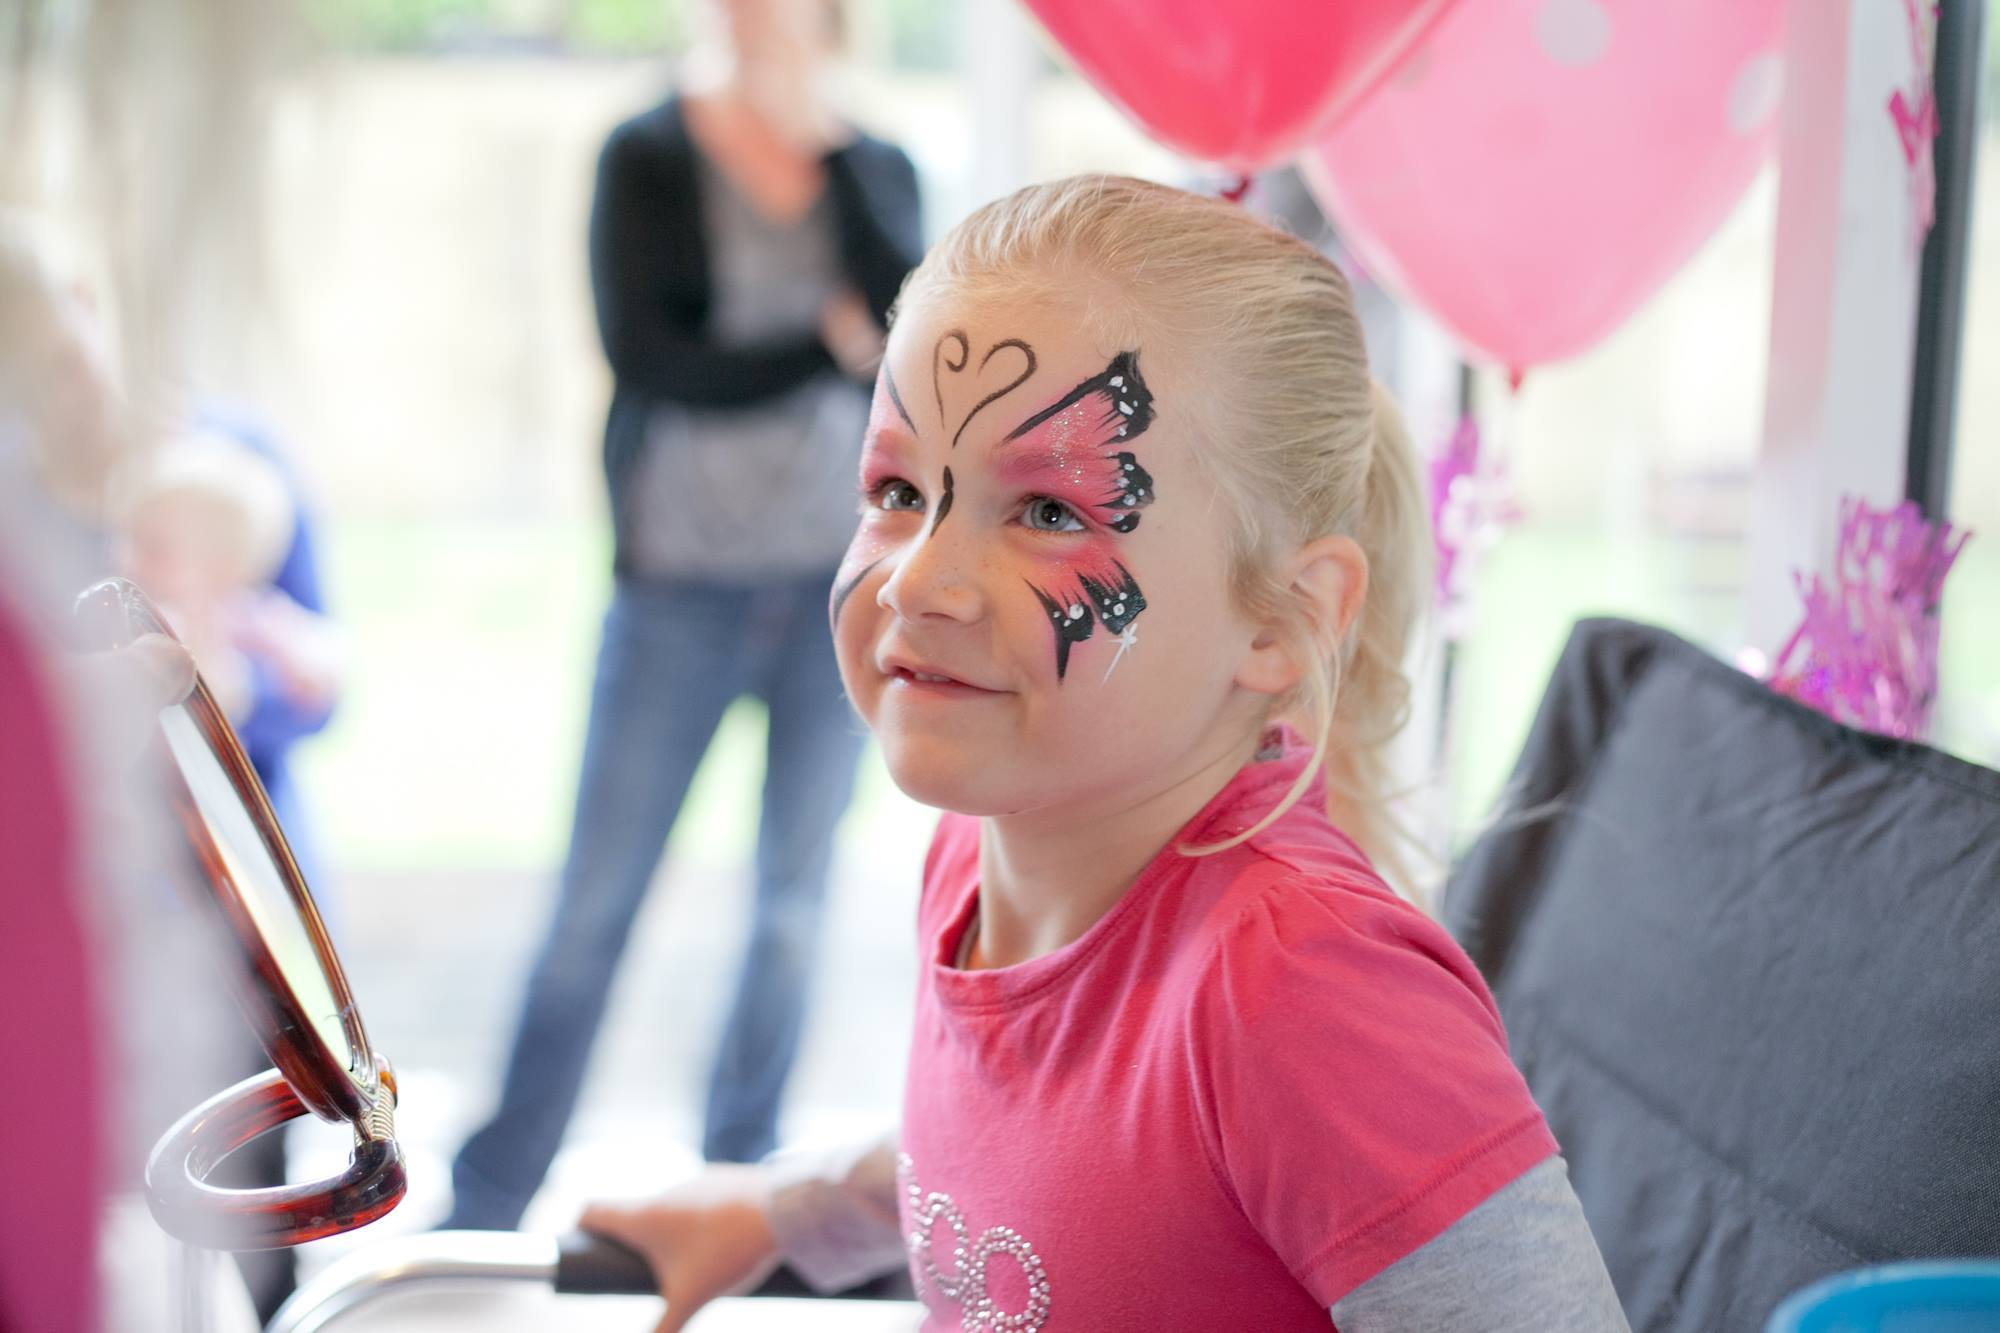 Auckland Face Painter for hire